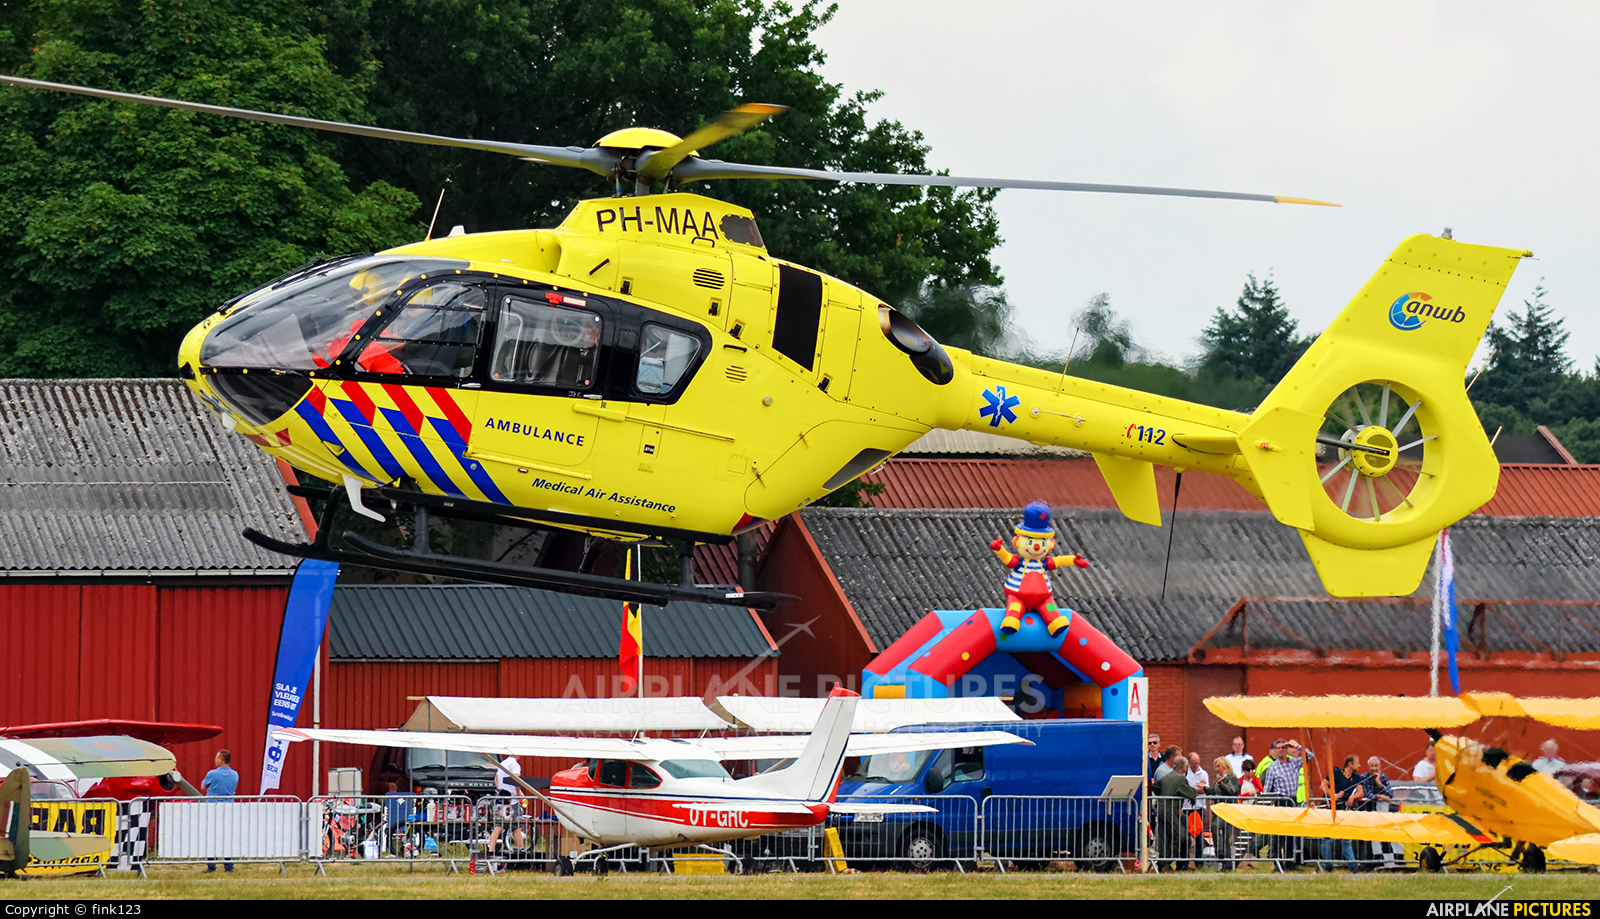 ANWB Medical Air Assistance PH-MAA aircraft at Hoeven - Seppe